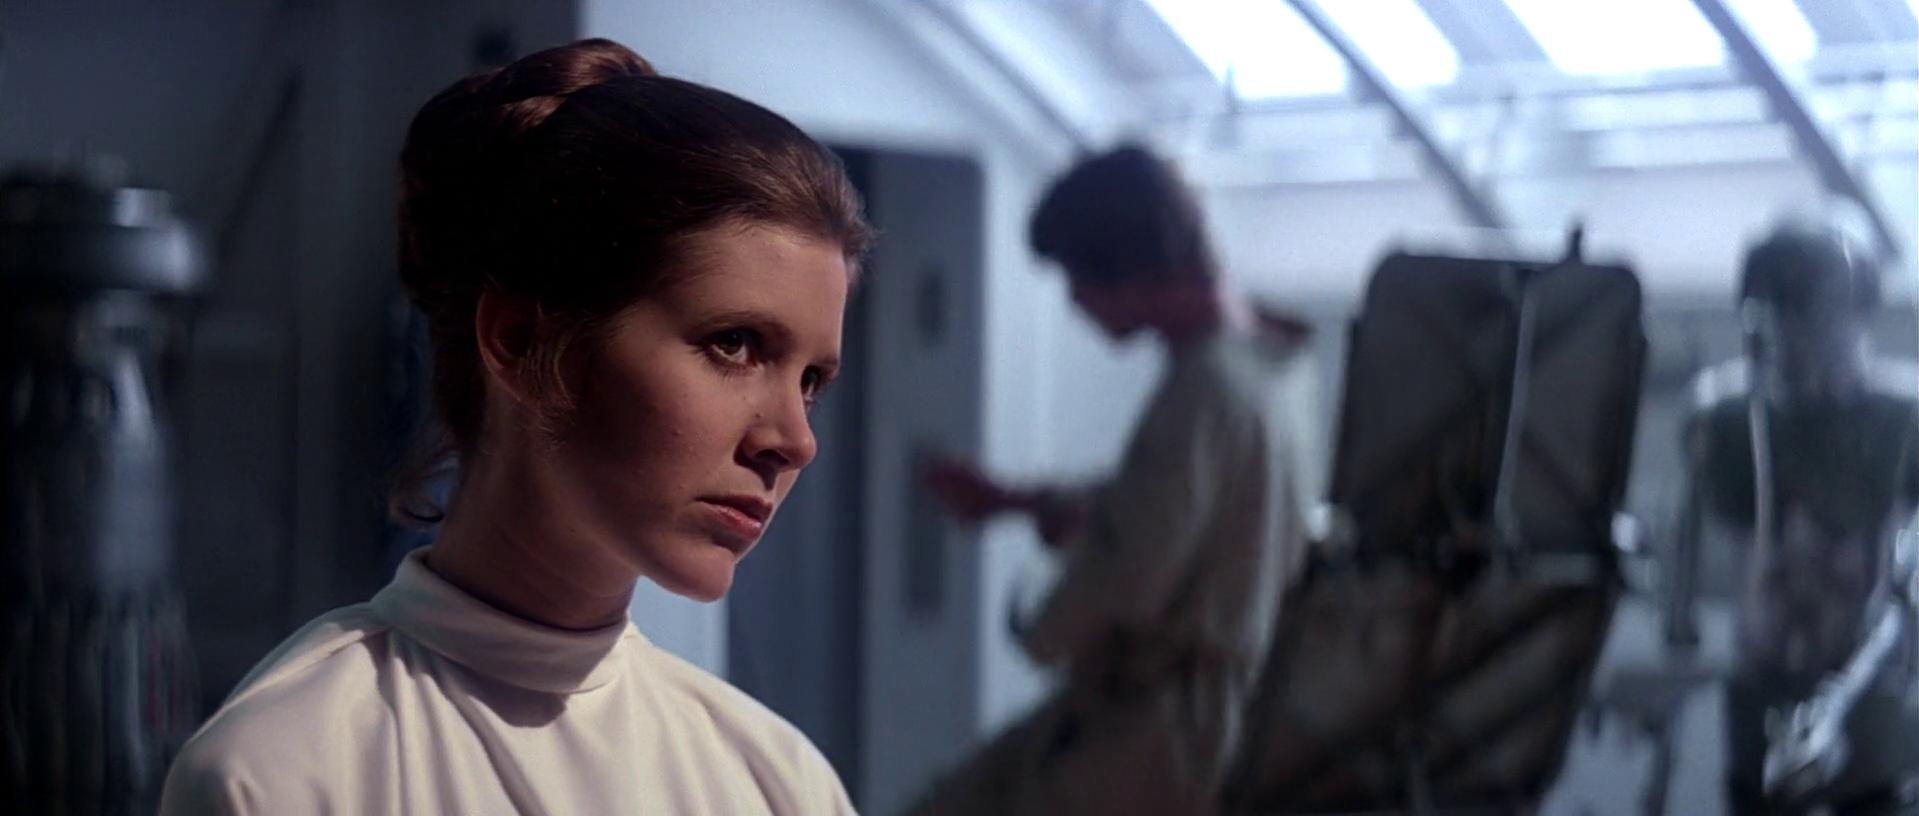 Star Wars Actress Carrie Fisher Dead at 60